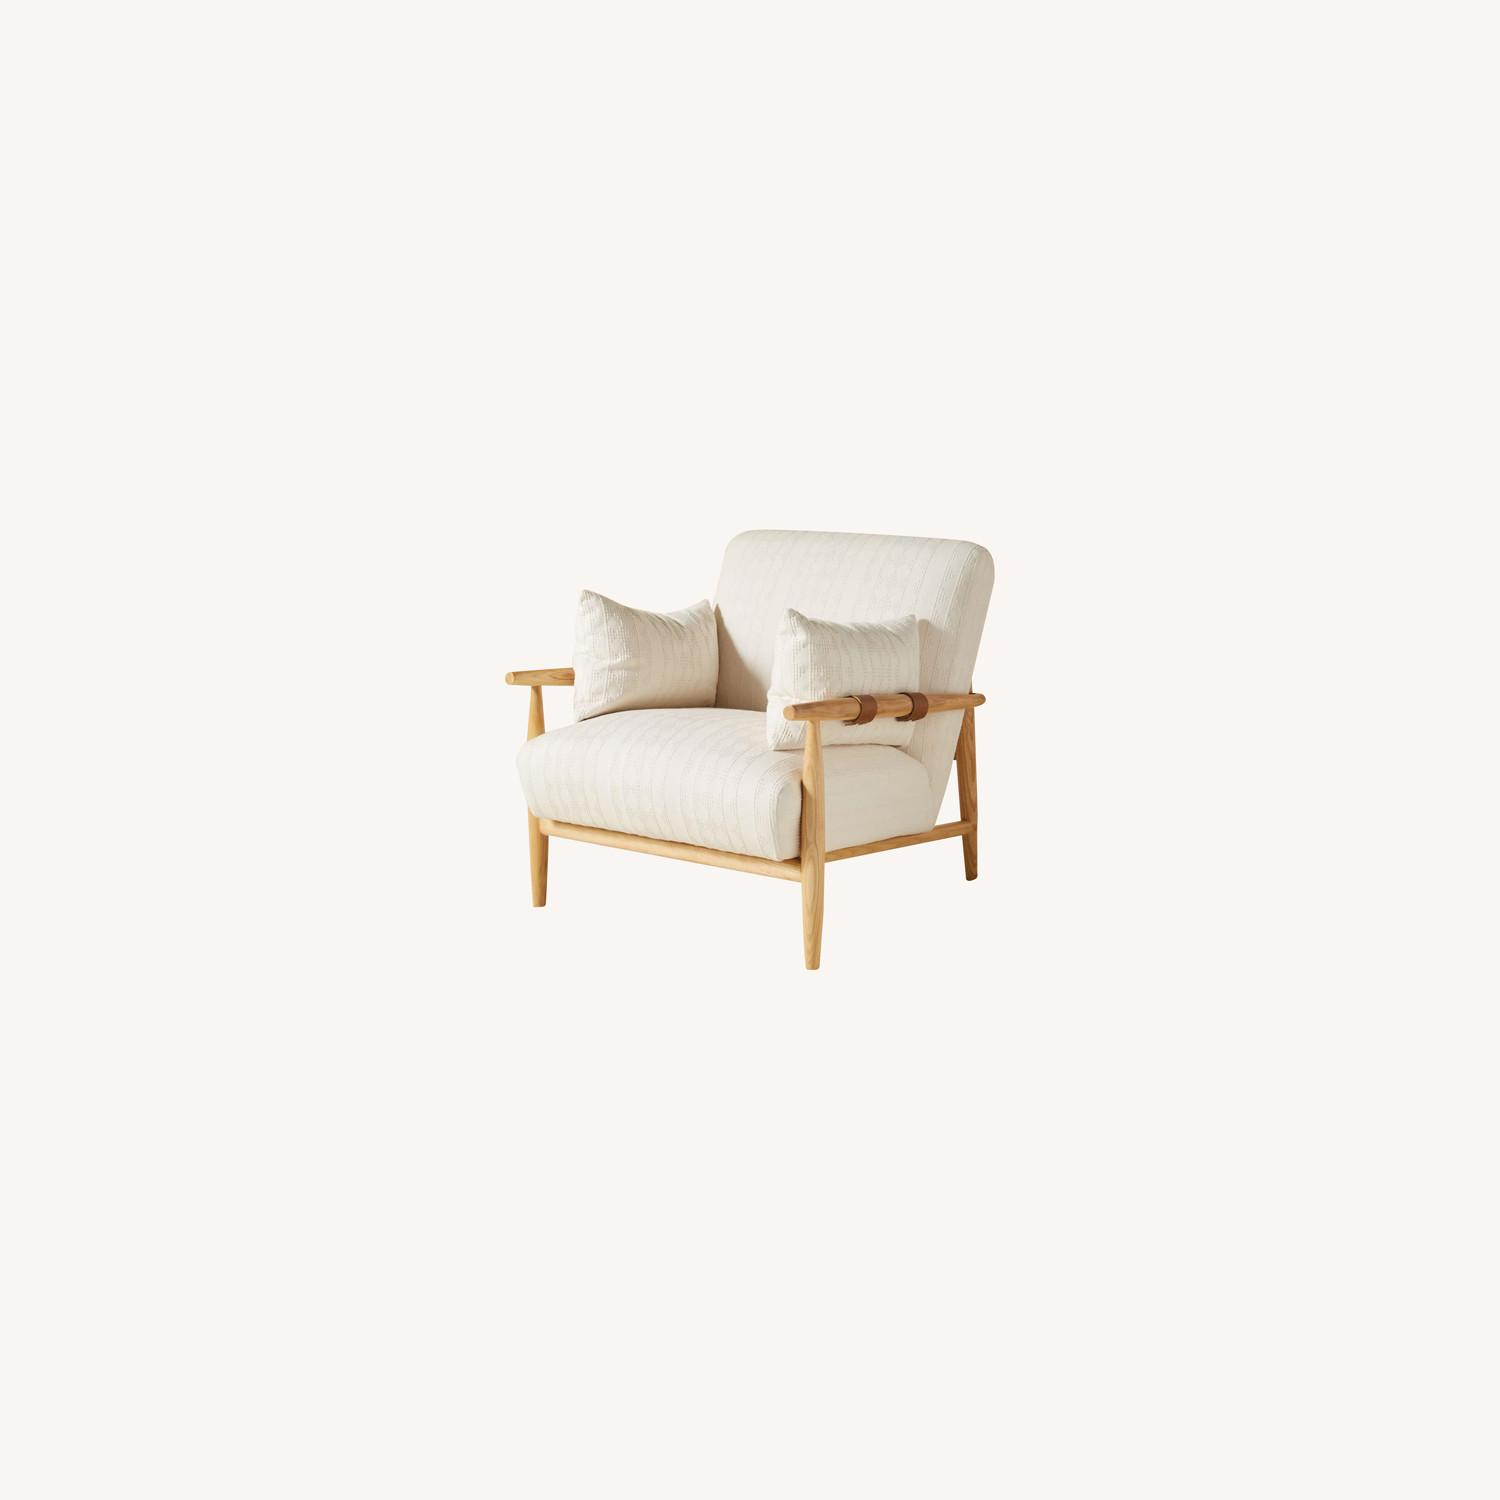 Anthropologie Kershaw Accent Chairs - image-0